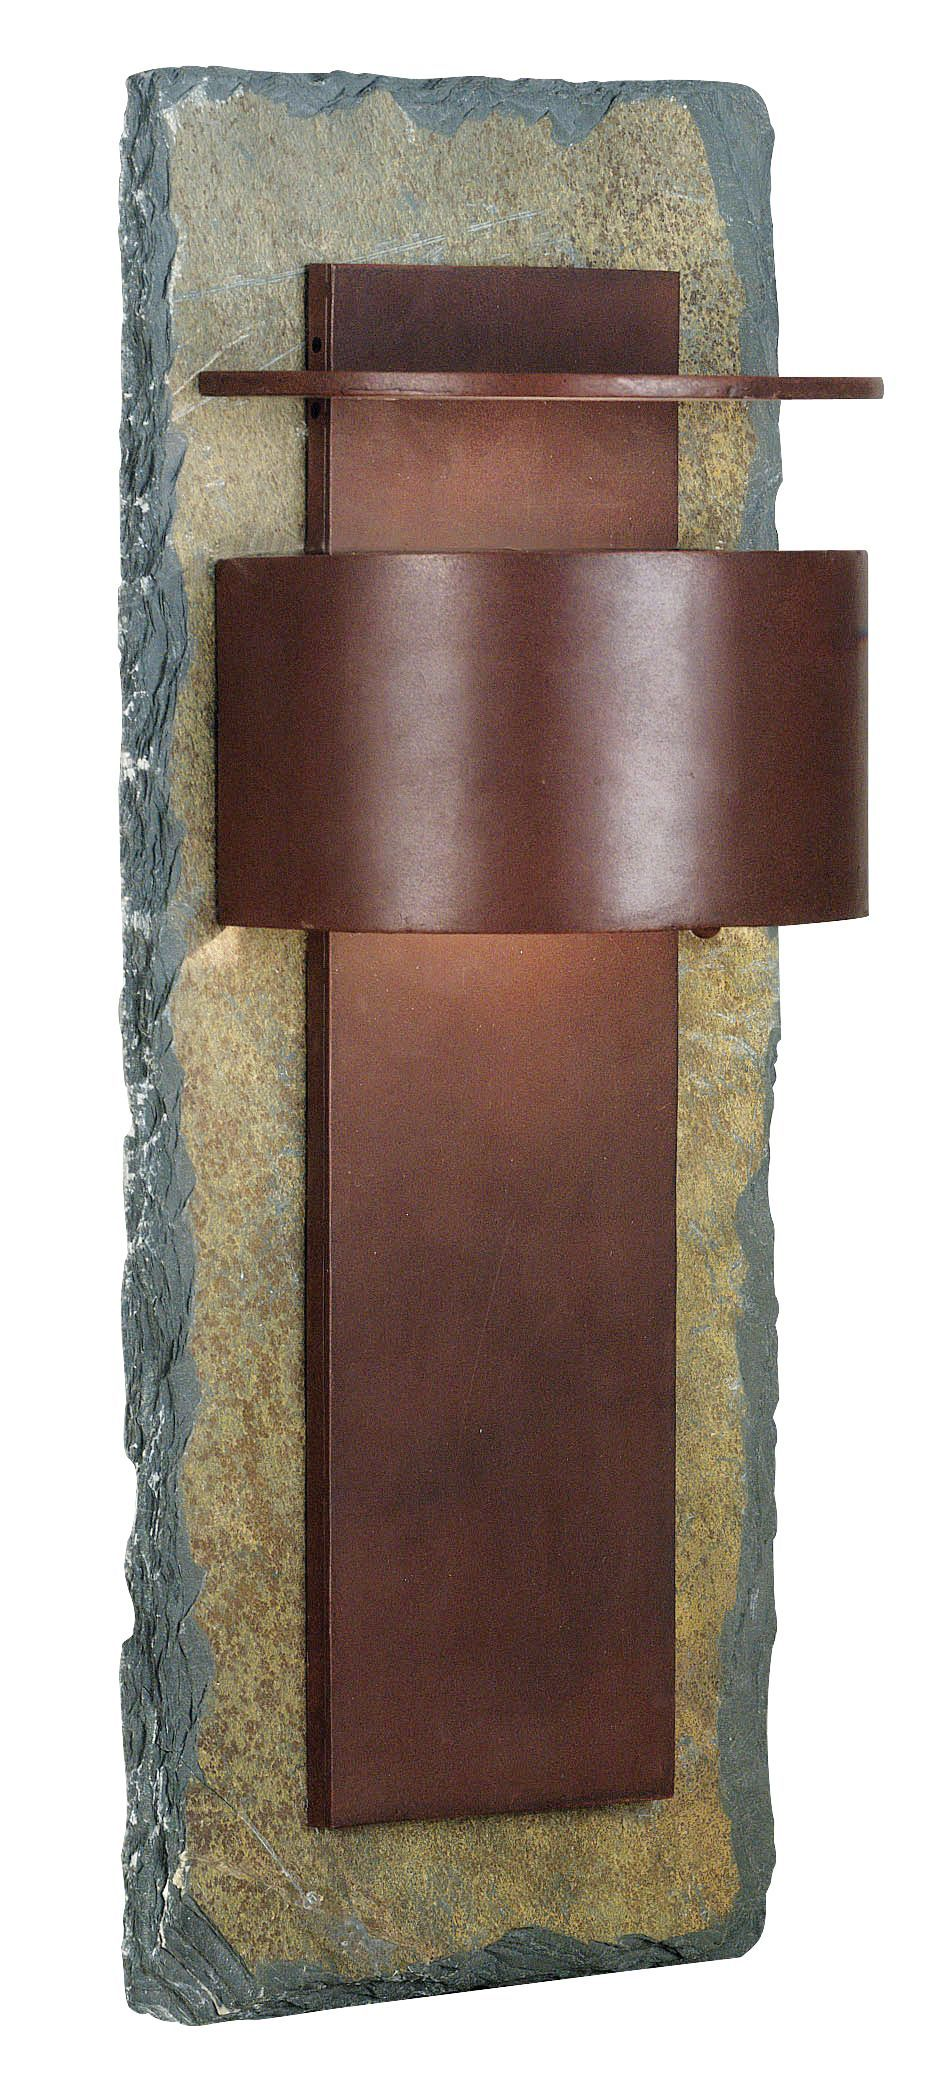 Kembra Slate Copper Modern 24 Inch H Outdoor Wall Sconce